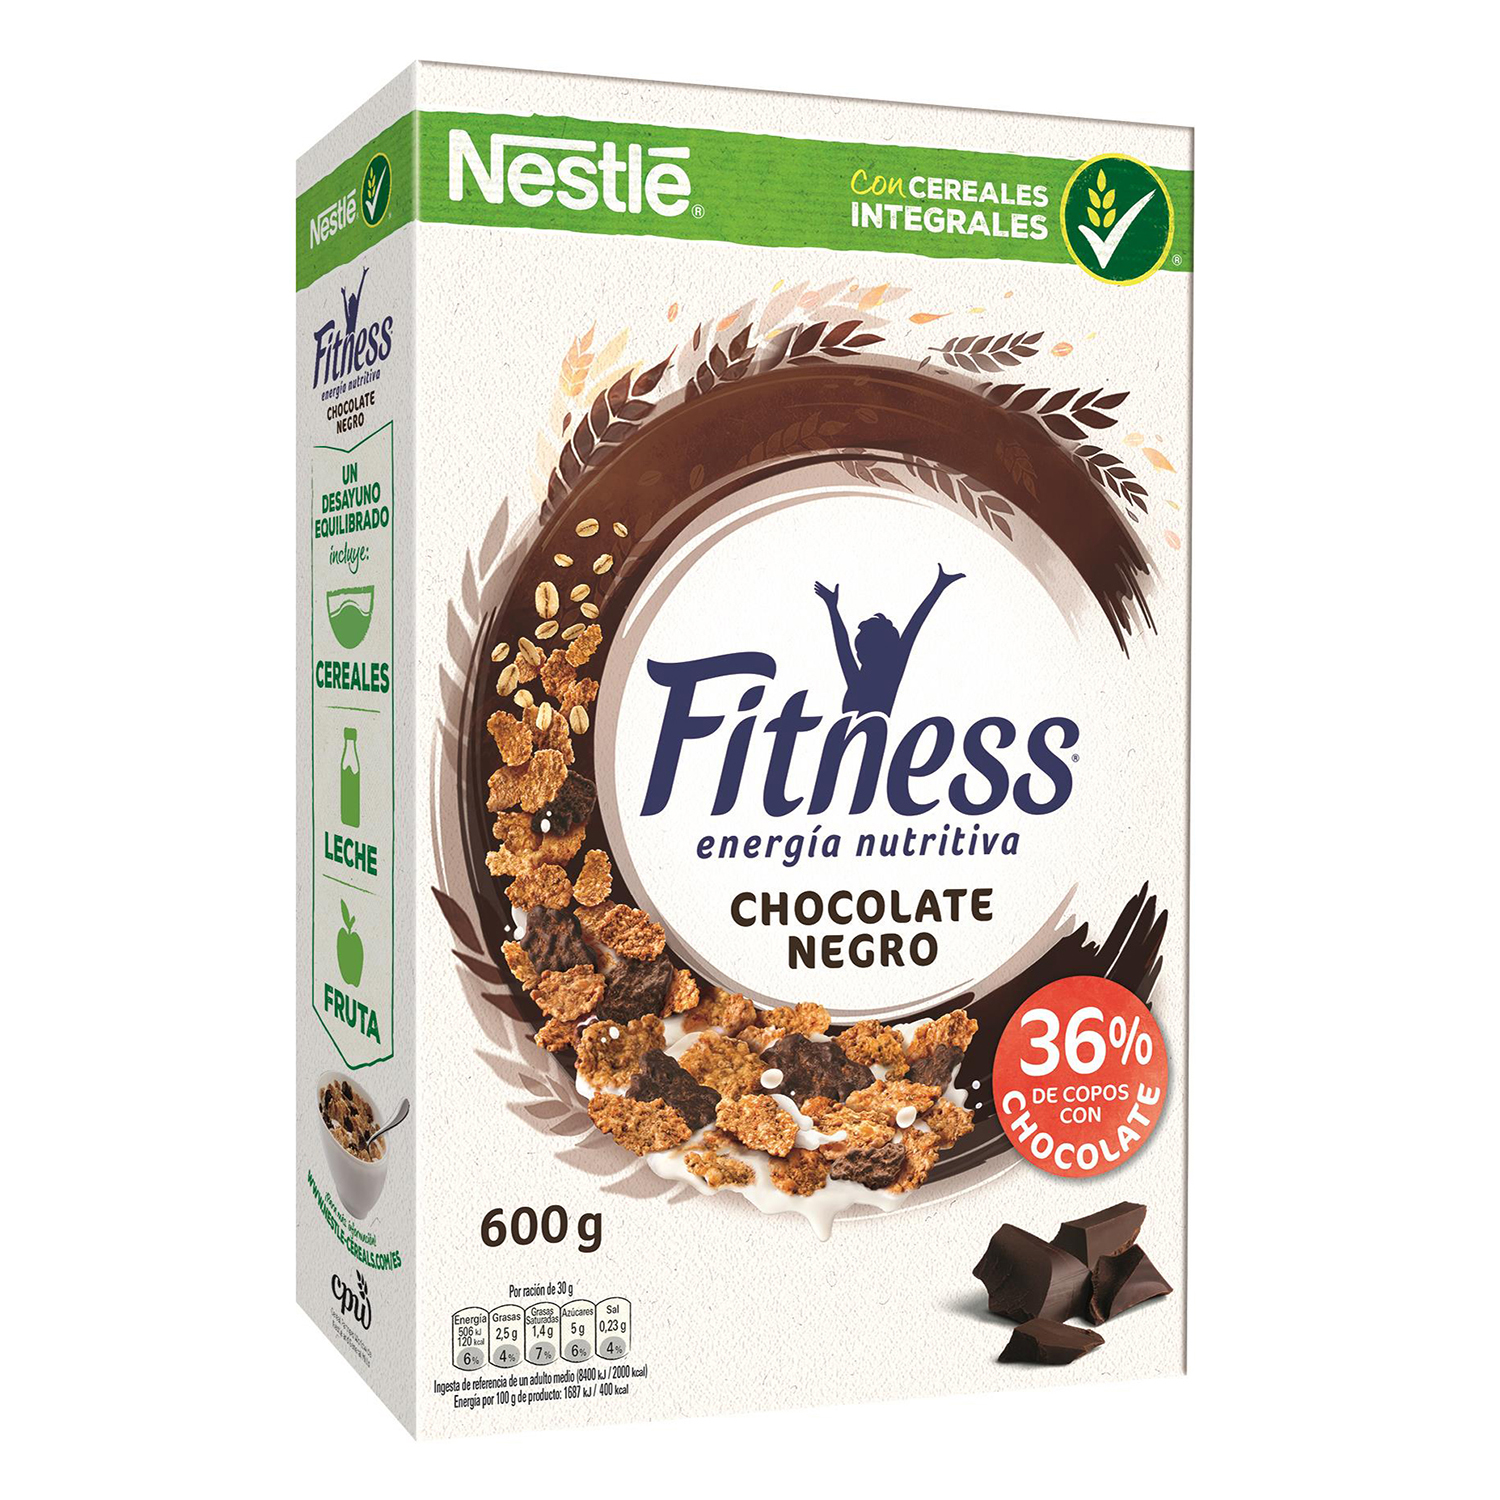 Cereales integrales con chocolate negro Fitness Nestlé 600 g.